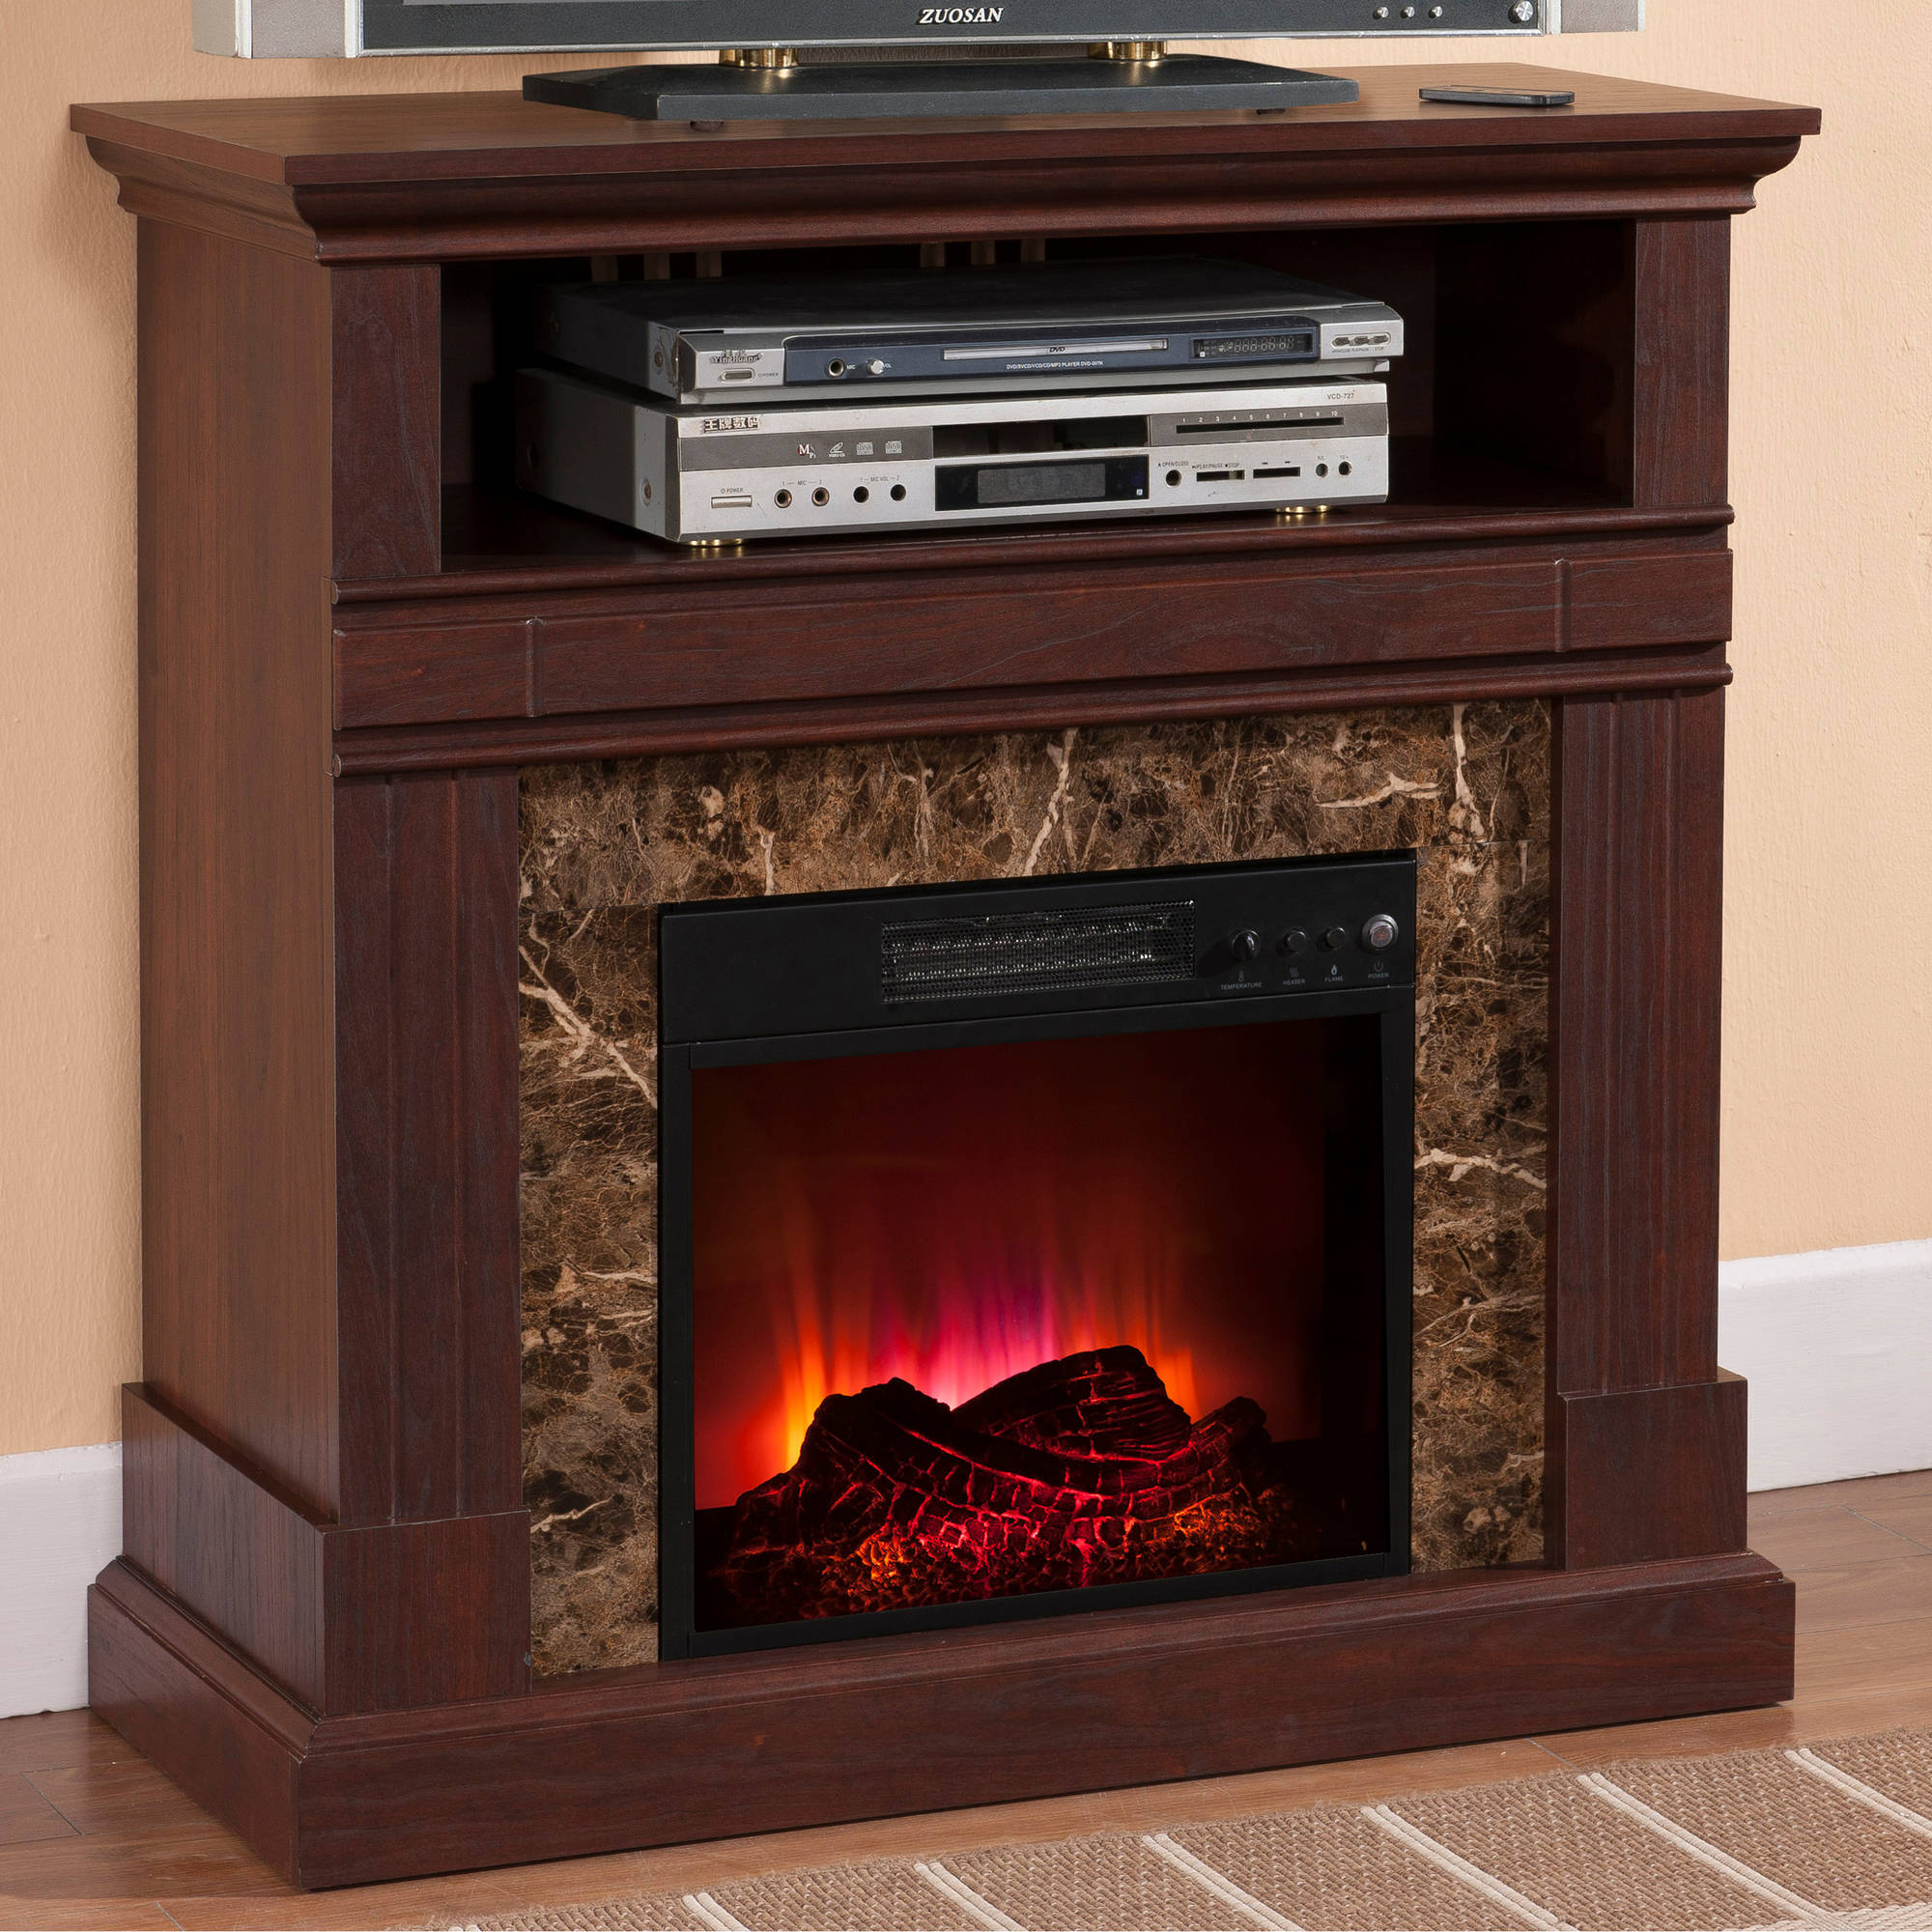 Miraculous Prokonian Electric Fireplace With 36 Mantle B003 Deep Walnut Interior Design Ideas Tzicisoteloinfo